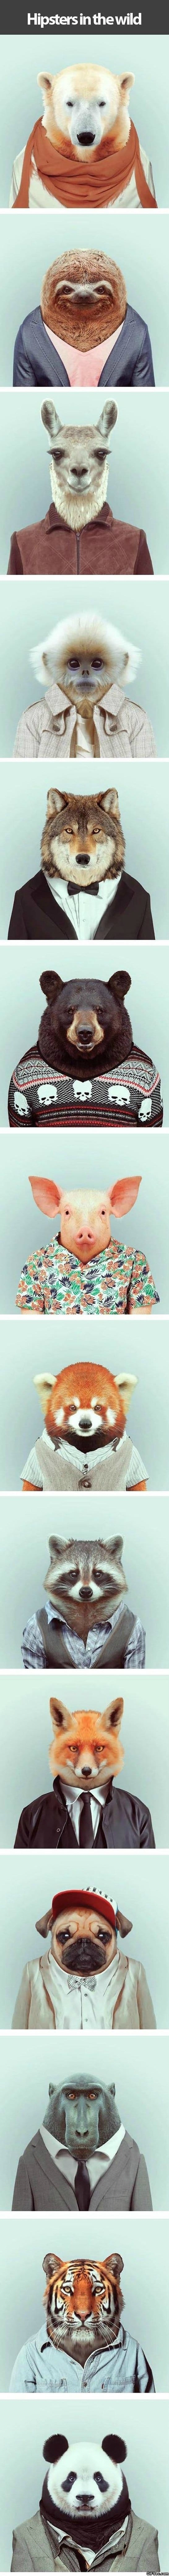 funny-pictures-hipster-animals